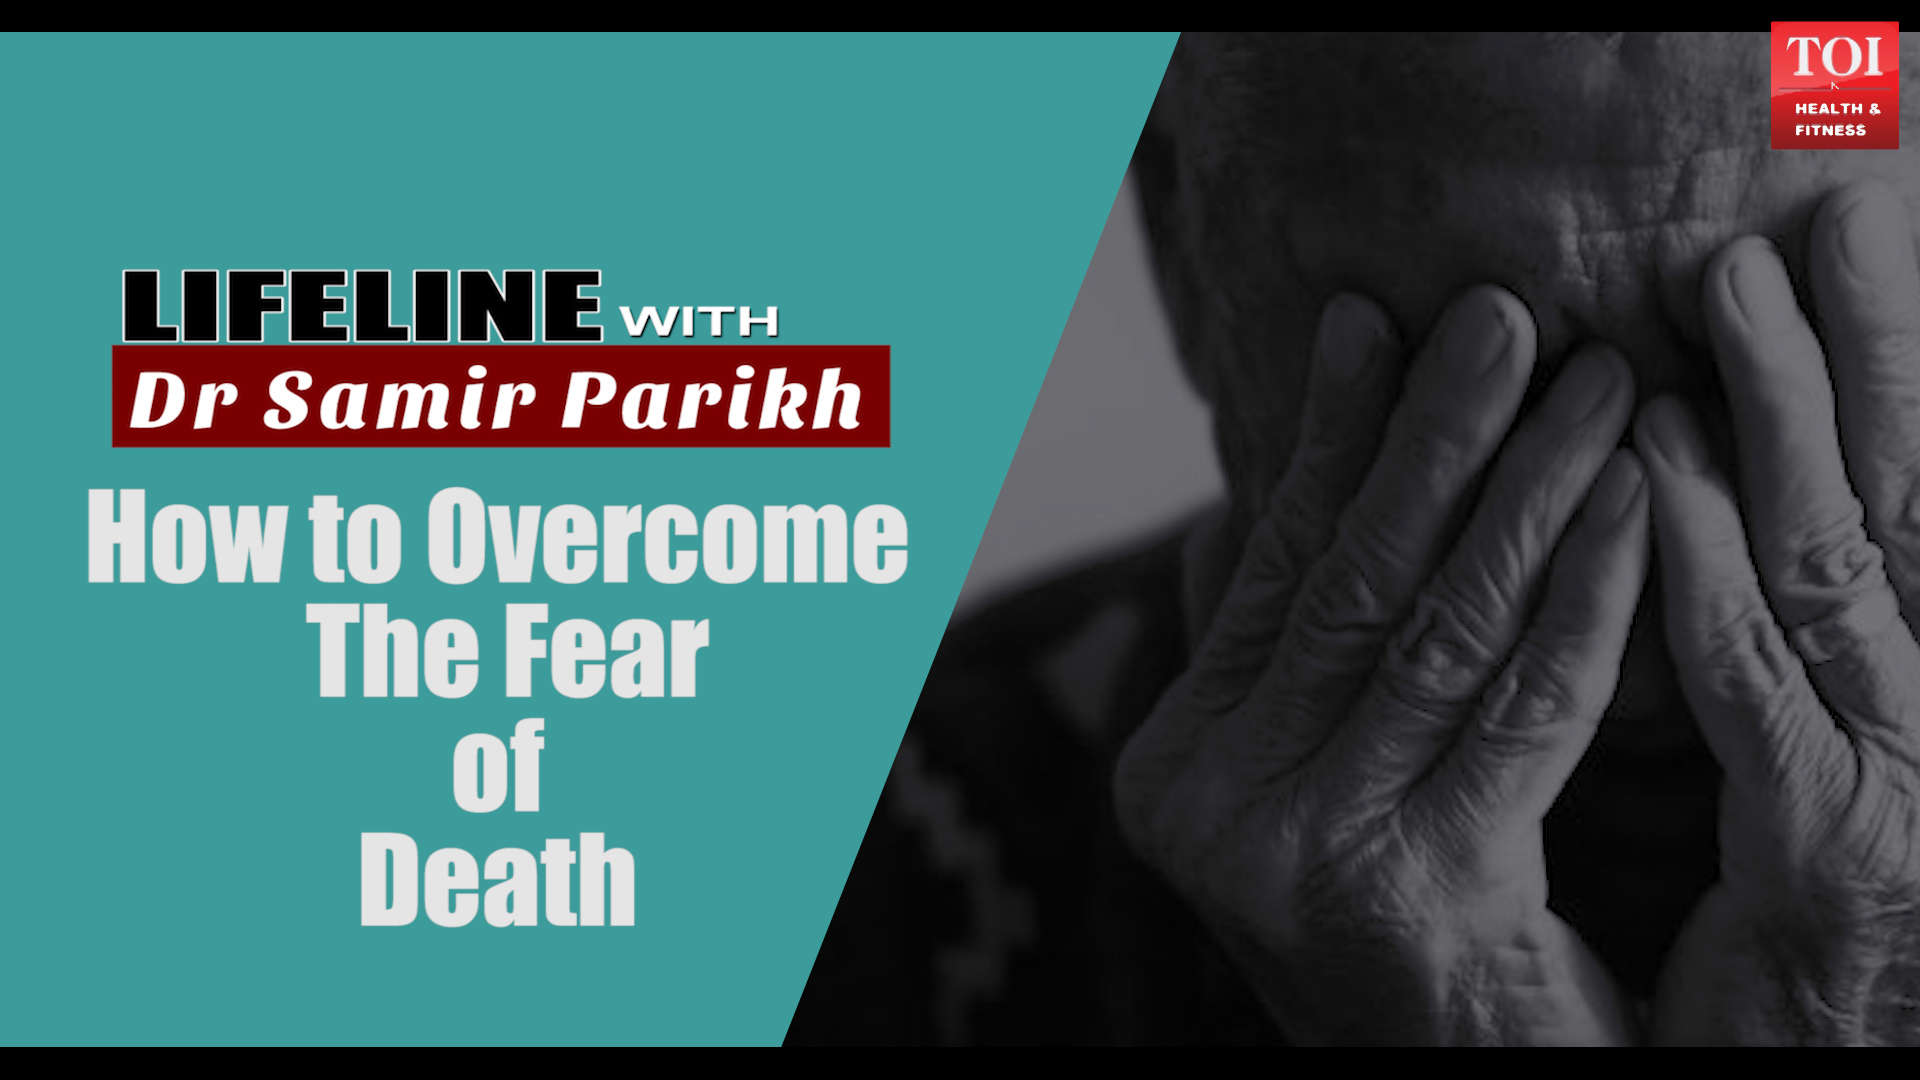 lifeline-with-dr-samir-parikh-how-to-overcome-the-fear-of-death